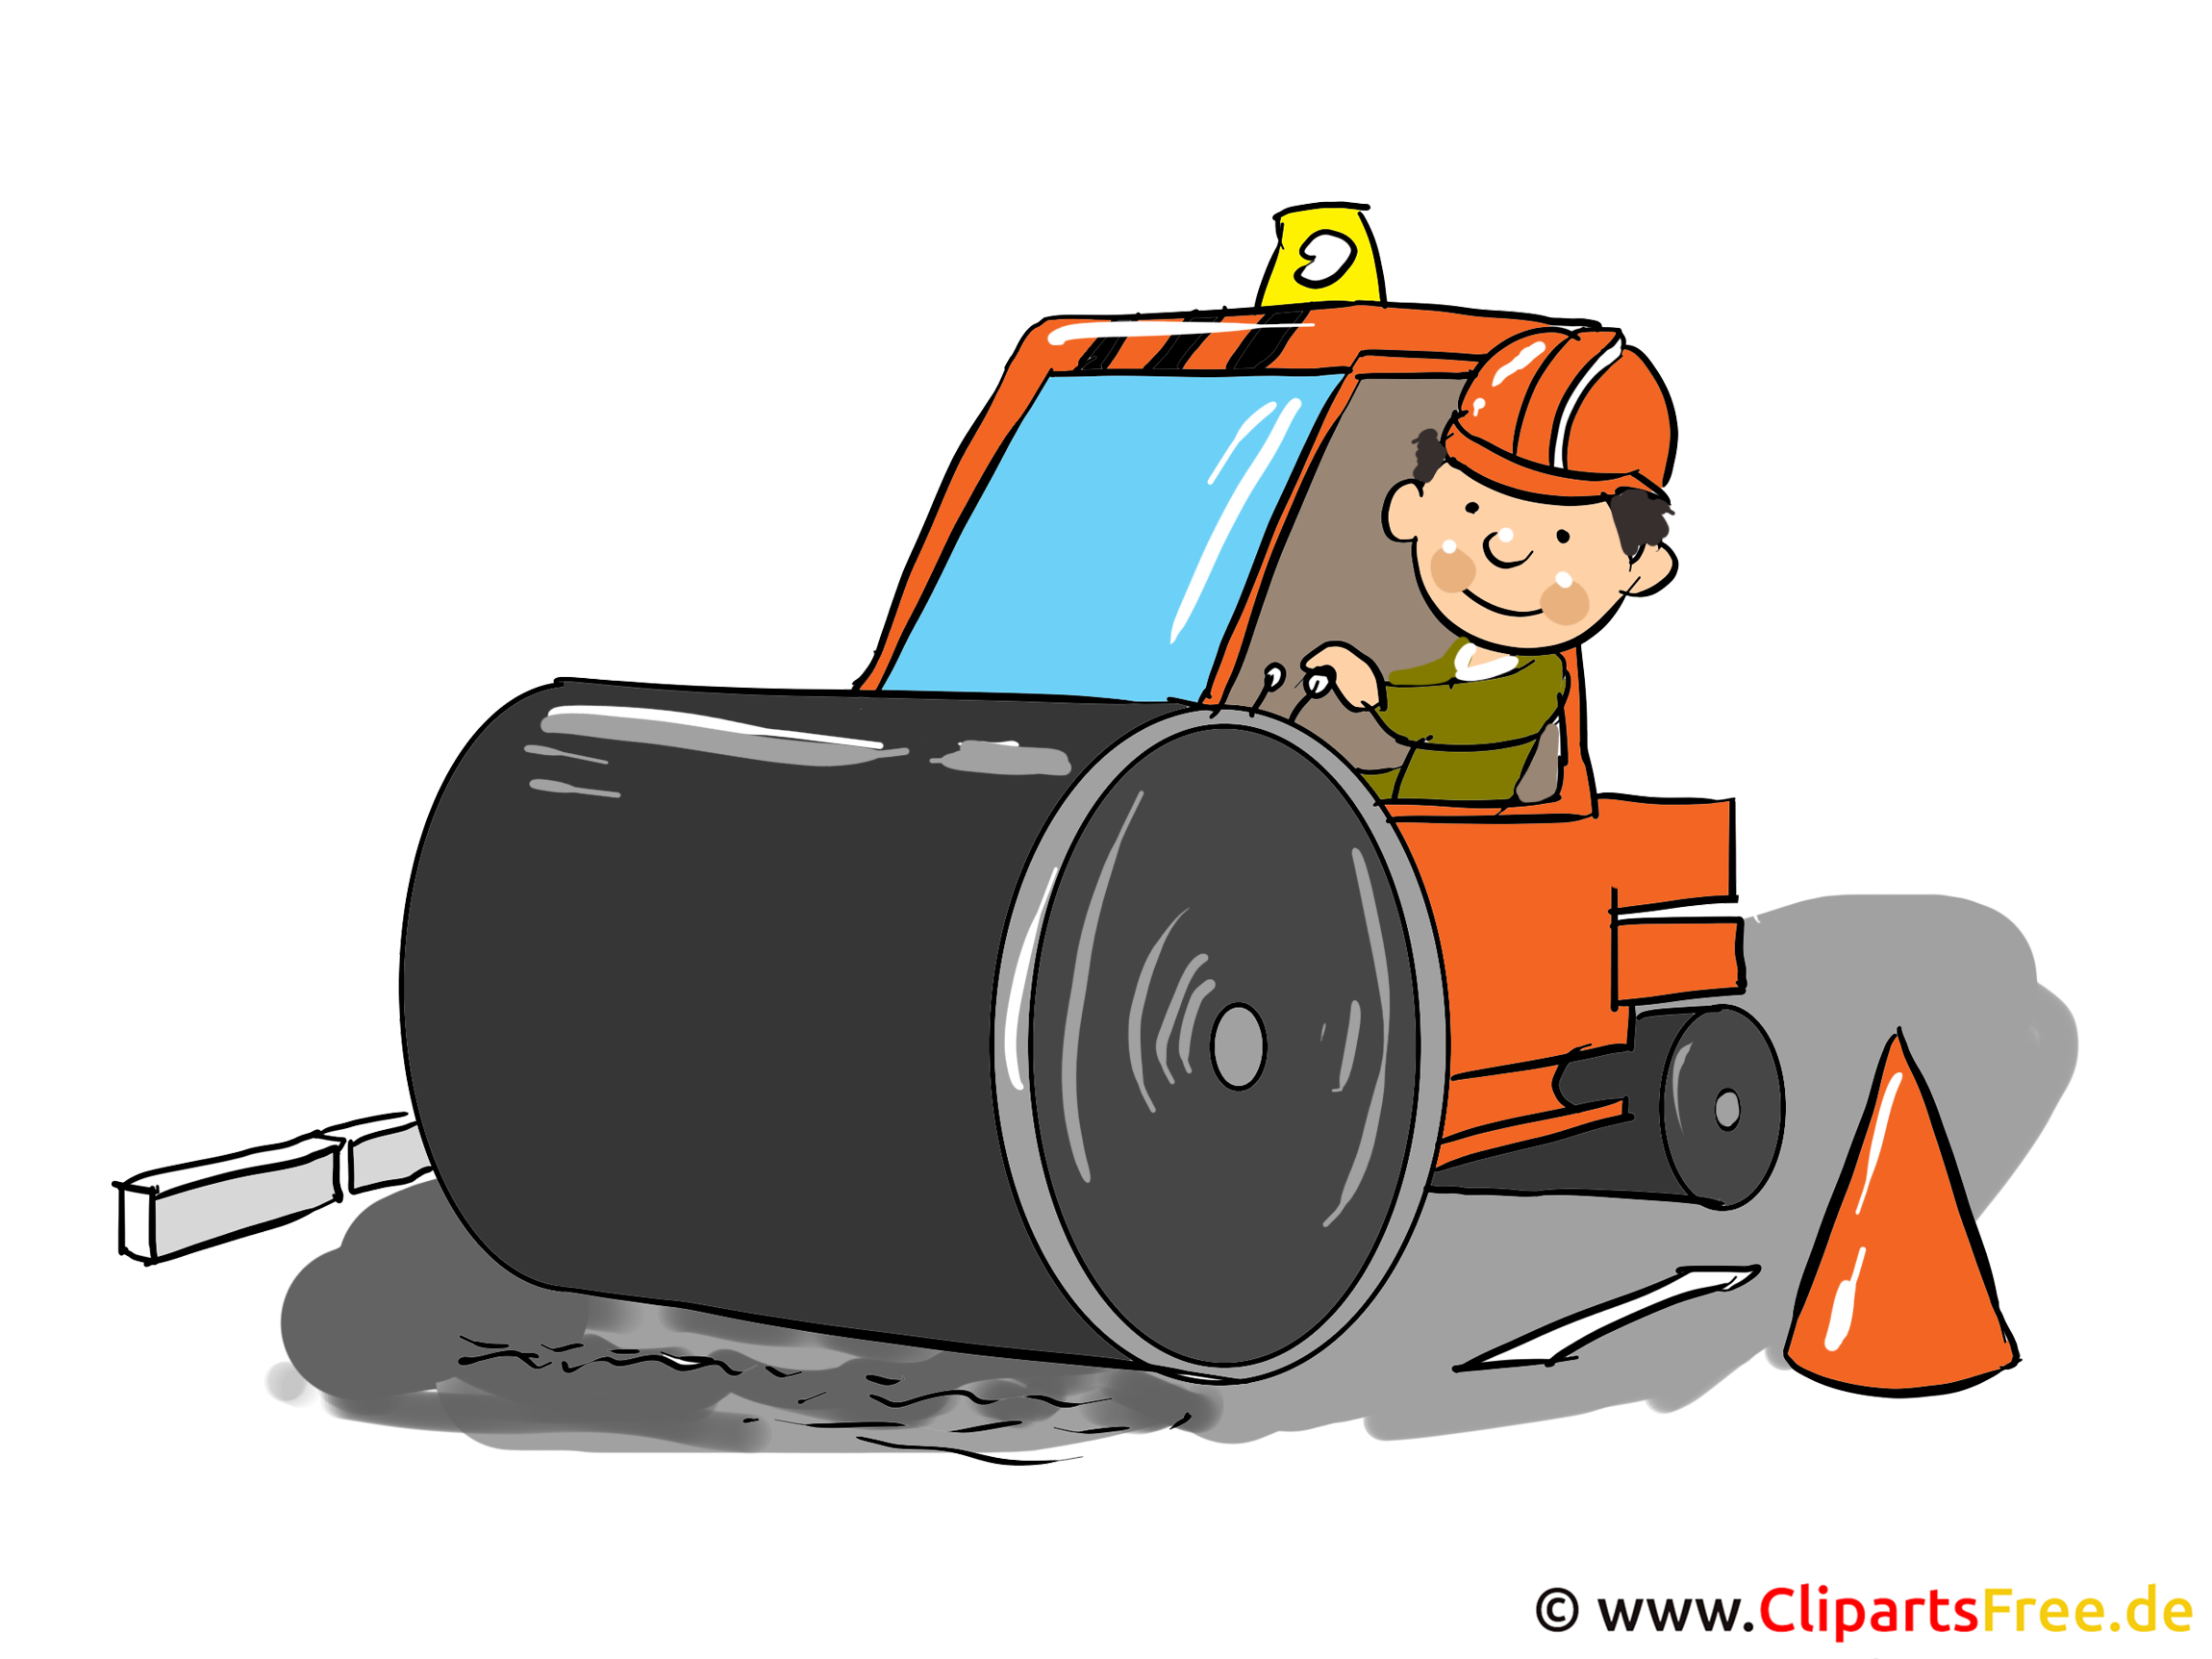 Baustelle Clipart, Cartoon, Bild, Illustration gratis